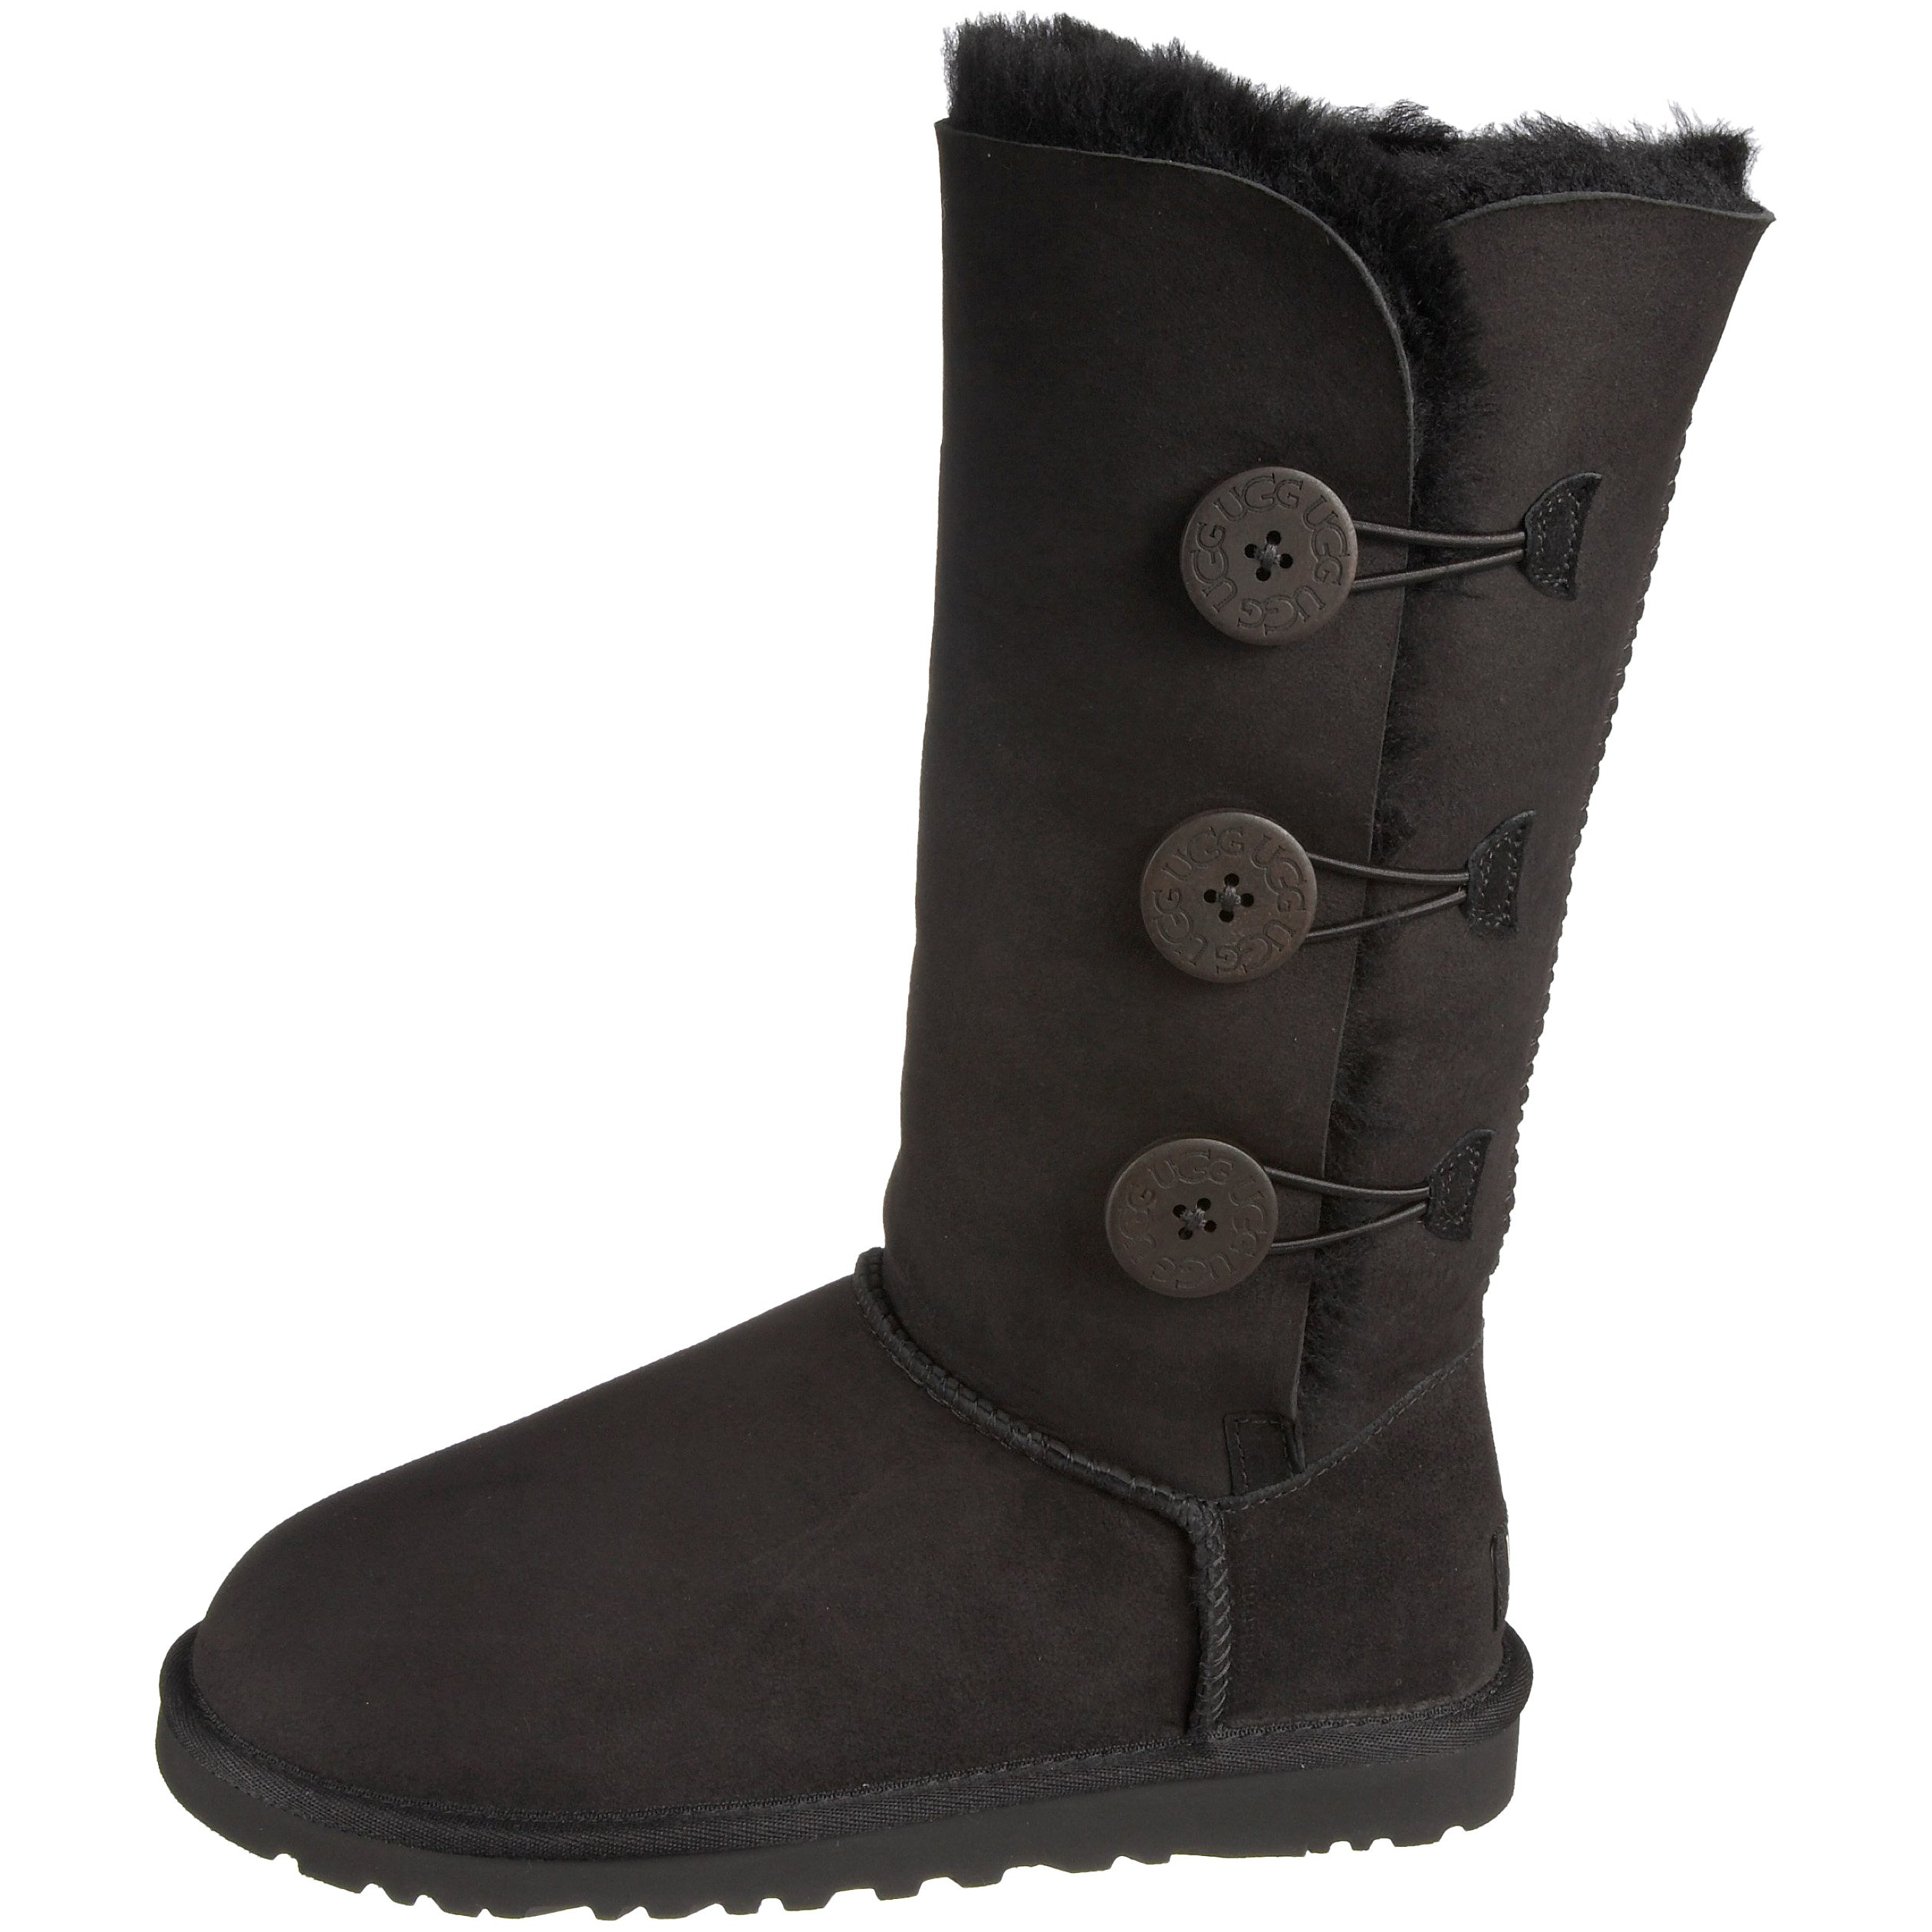 Ugg Women's Bailey Button Triplet Boot, Black, 6 M US by UGG (Image #5)